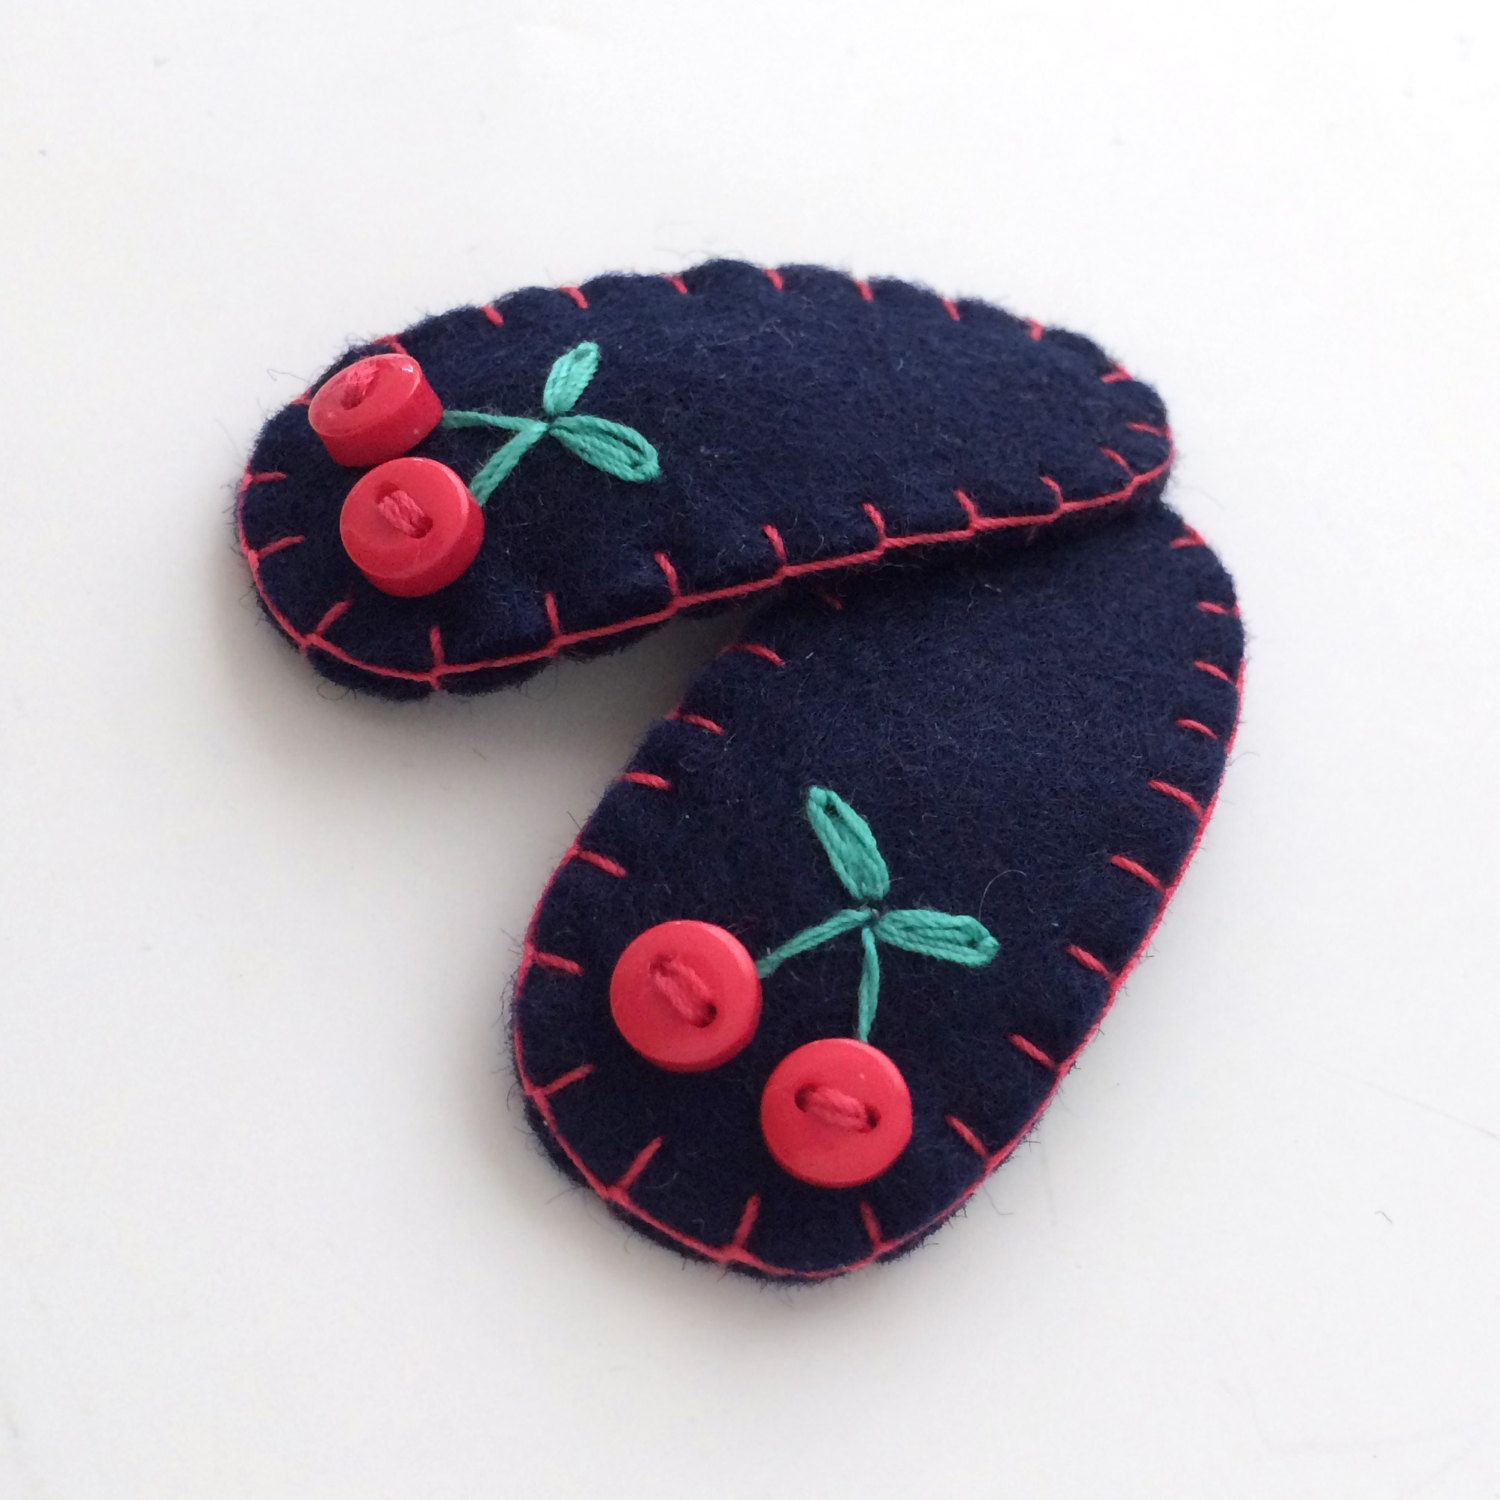 Items similar to Baby Hair Clips, Cherry Hair Clip for Baby Girls and Infants, Toddler Hair Accessory, Fruit Hair Clip, Baby Hairpin, Felt Hair Clip on Etsy